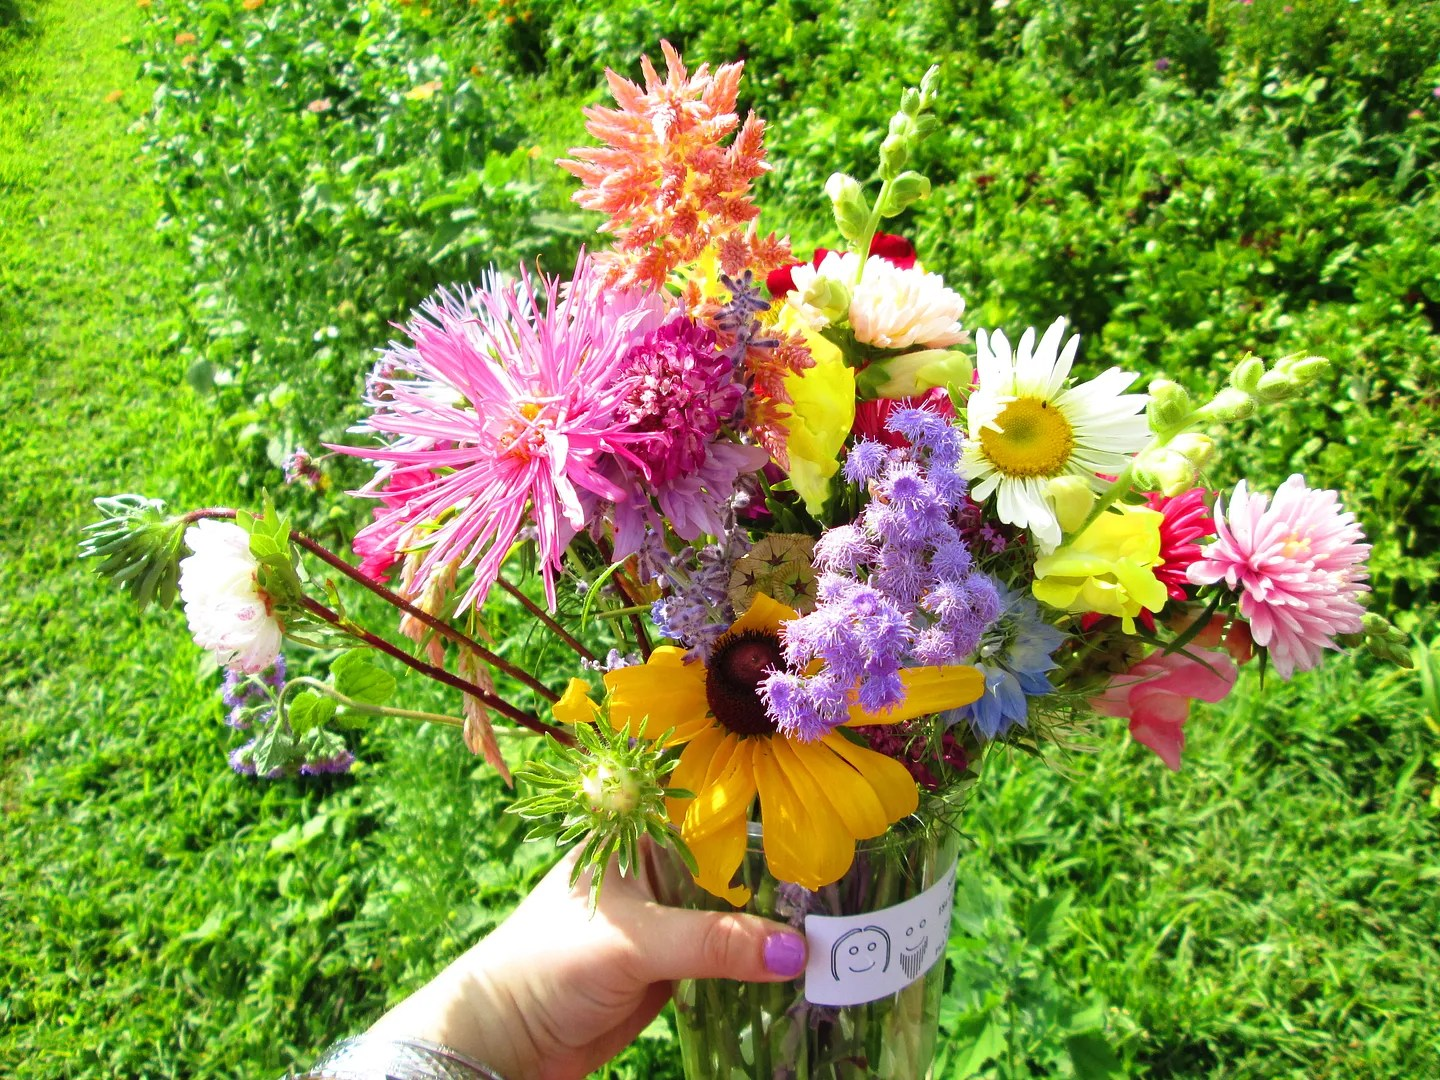 bouquet of colorful flowers in a field